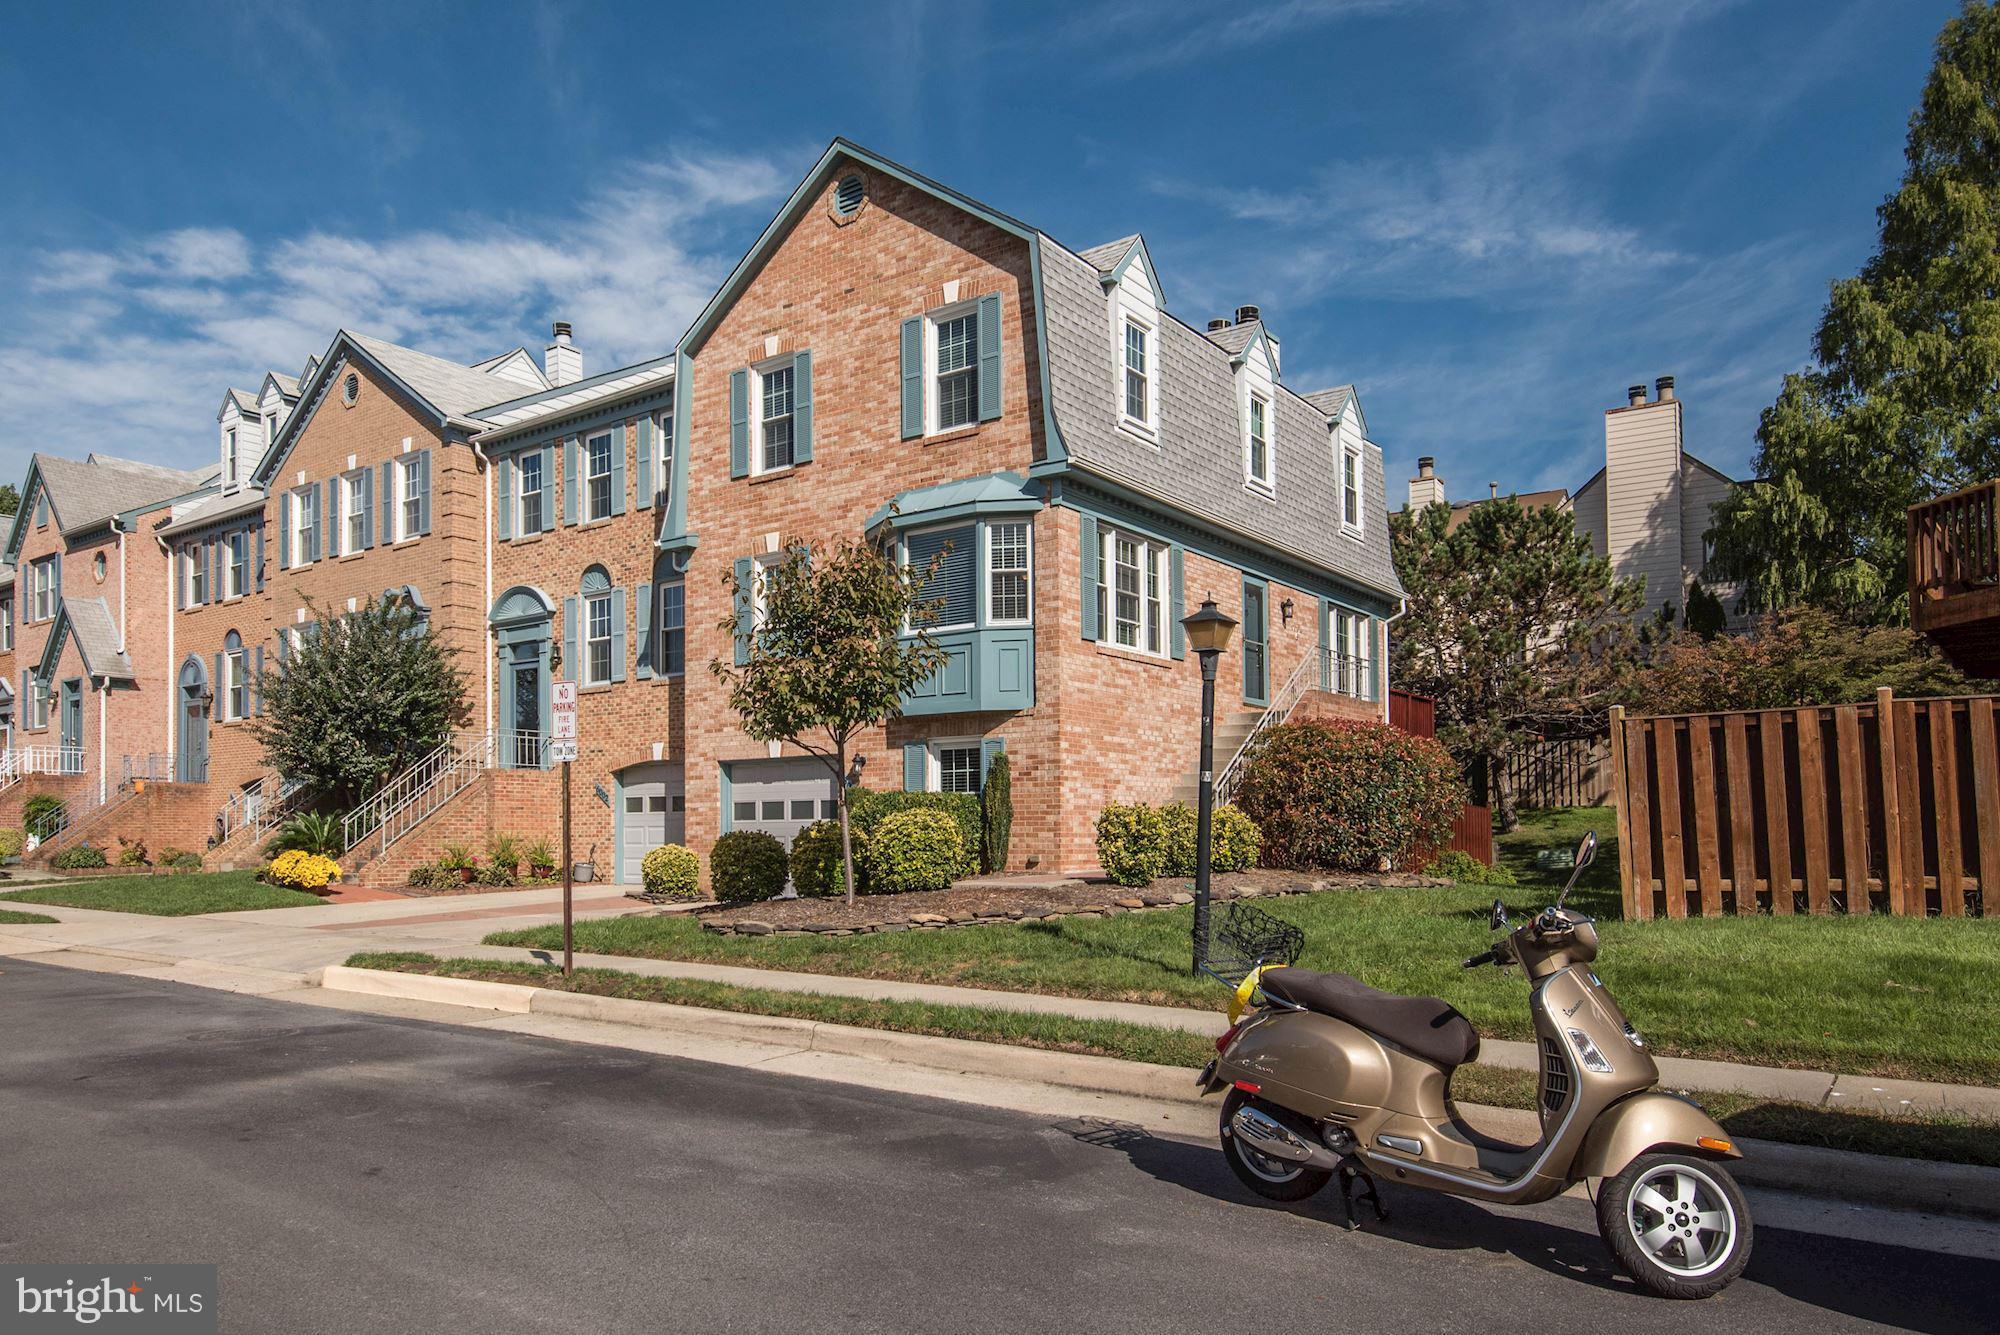 **MAXIMUM CURB APPEAL** Pride of ownership shows in this end-unit garage townhome! Light & bright w/ gleaming hardwood floors+New Windows & Roof! Eat-in kitchen w/ granite tops+stainless appliances+serving bar. Remodeled master suite feat his/her closets+2 sinks+soaking tub+shower for 2. Big deck w/backyard patio perfect for outdoor fun. Cavernous lower level family room w/ sep den/office/playroom